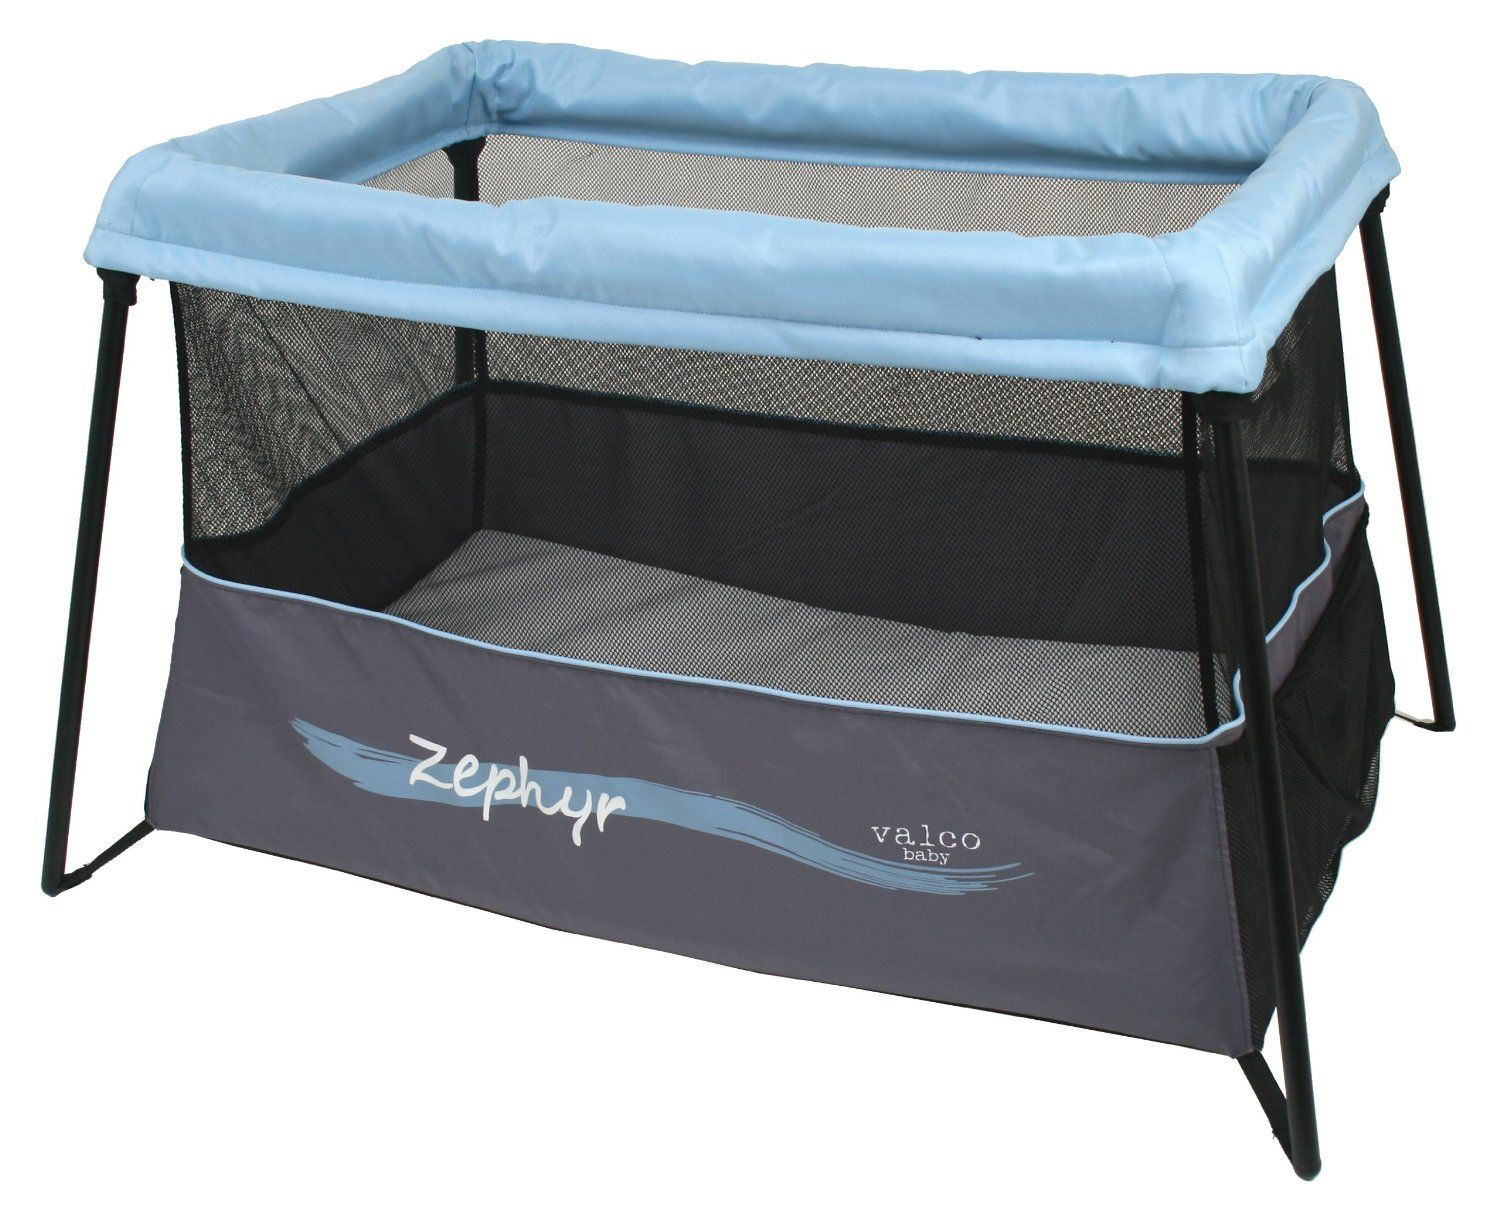 Alternatives to crib for babies - Valco Baby Zephyr Travel Crib Extra Lightweight Collapsable Playpen An Alternative To The Highly